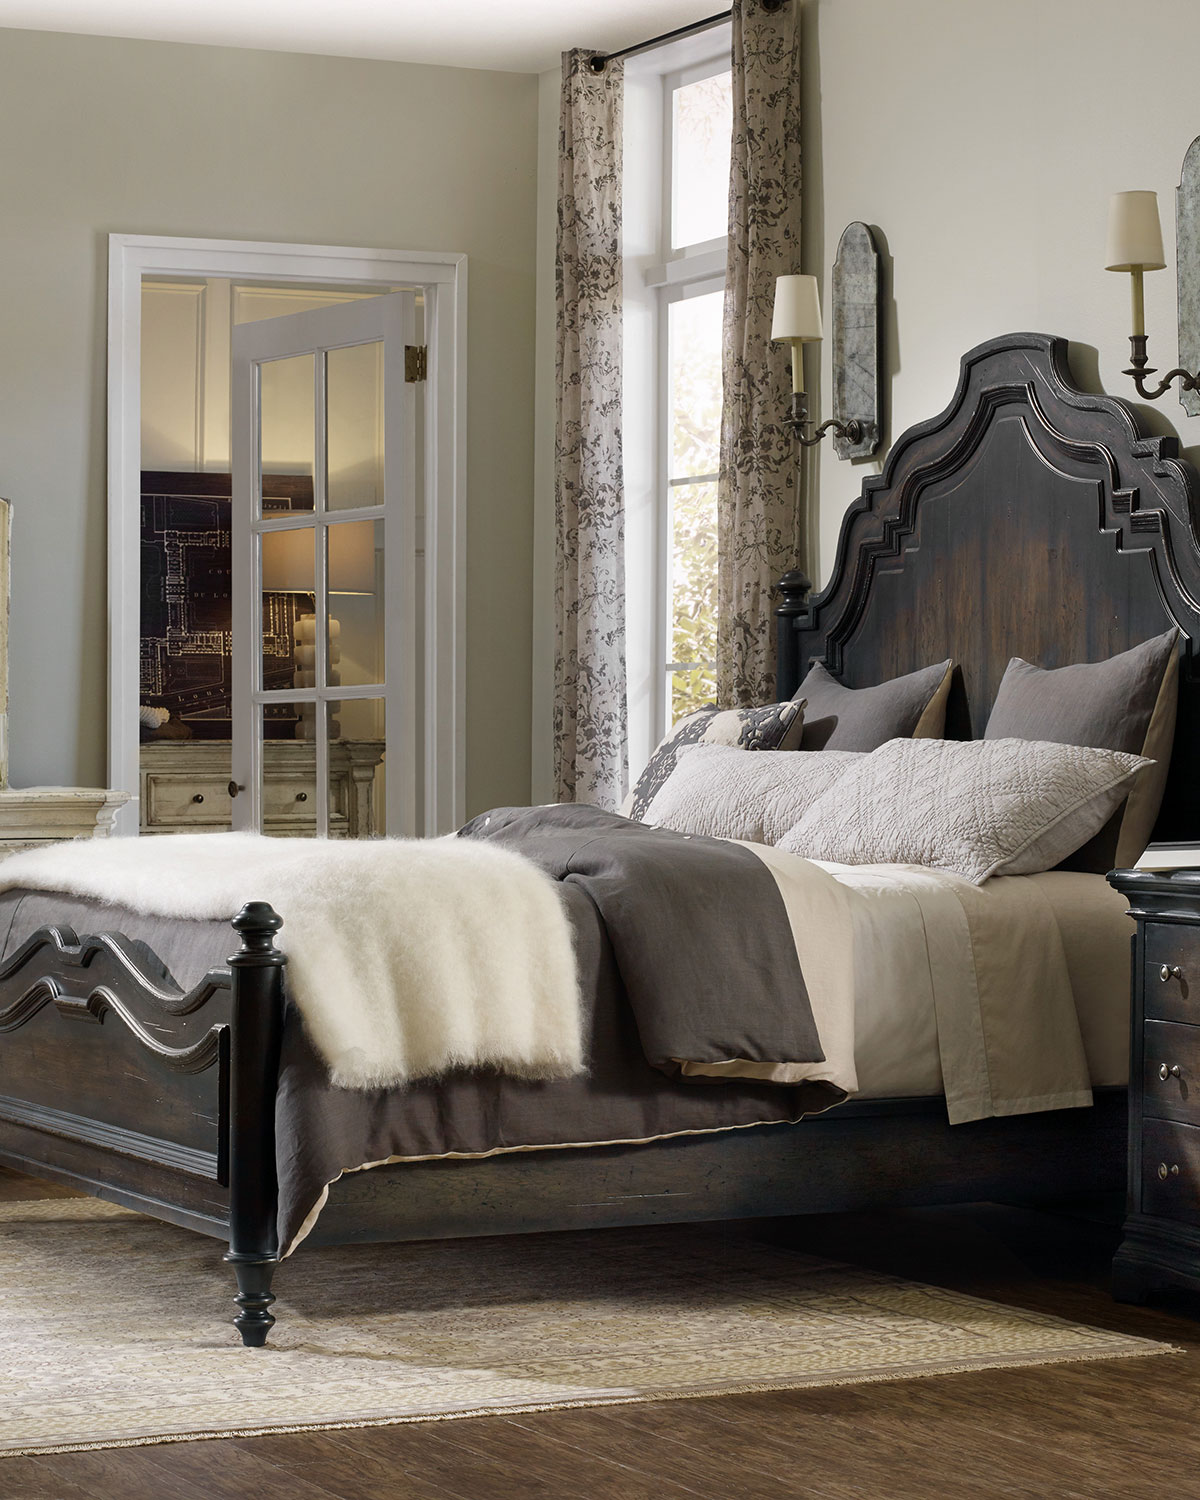 Hooker Furniture Annibale Queen Panel Bed Neiman Marcus